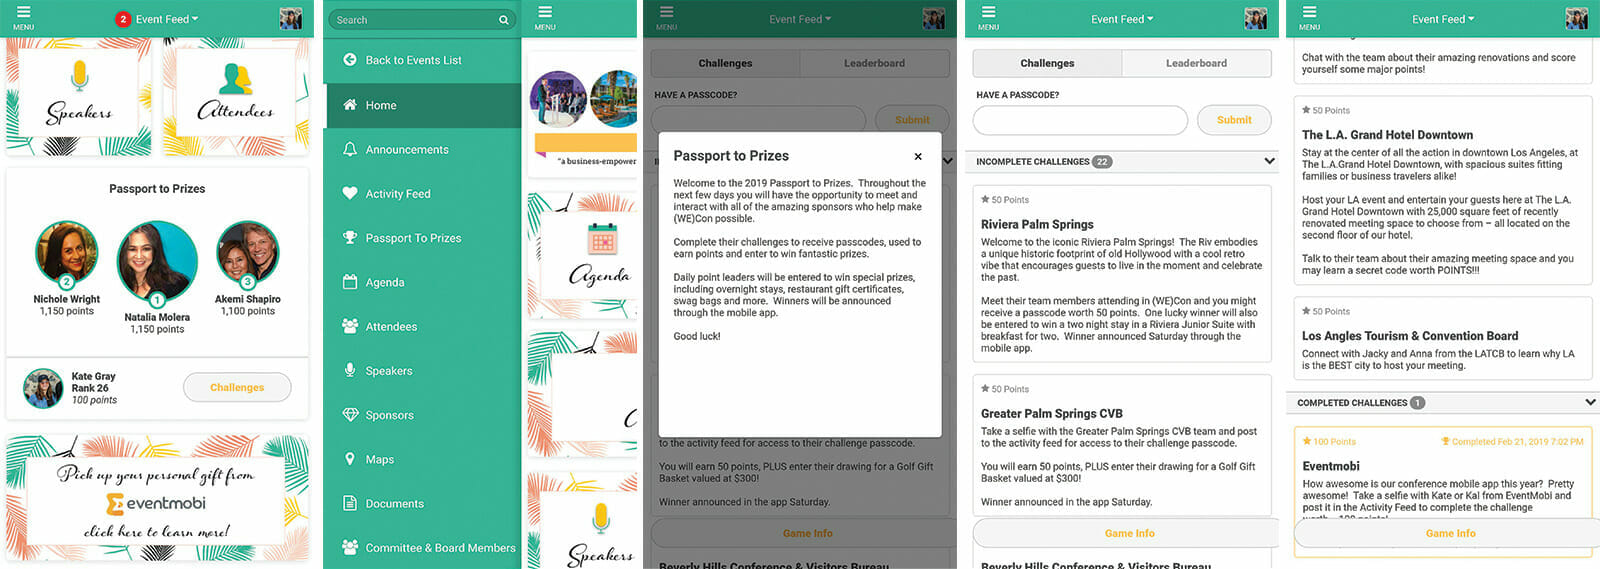 The best way to approach event app design